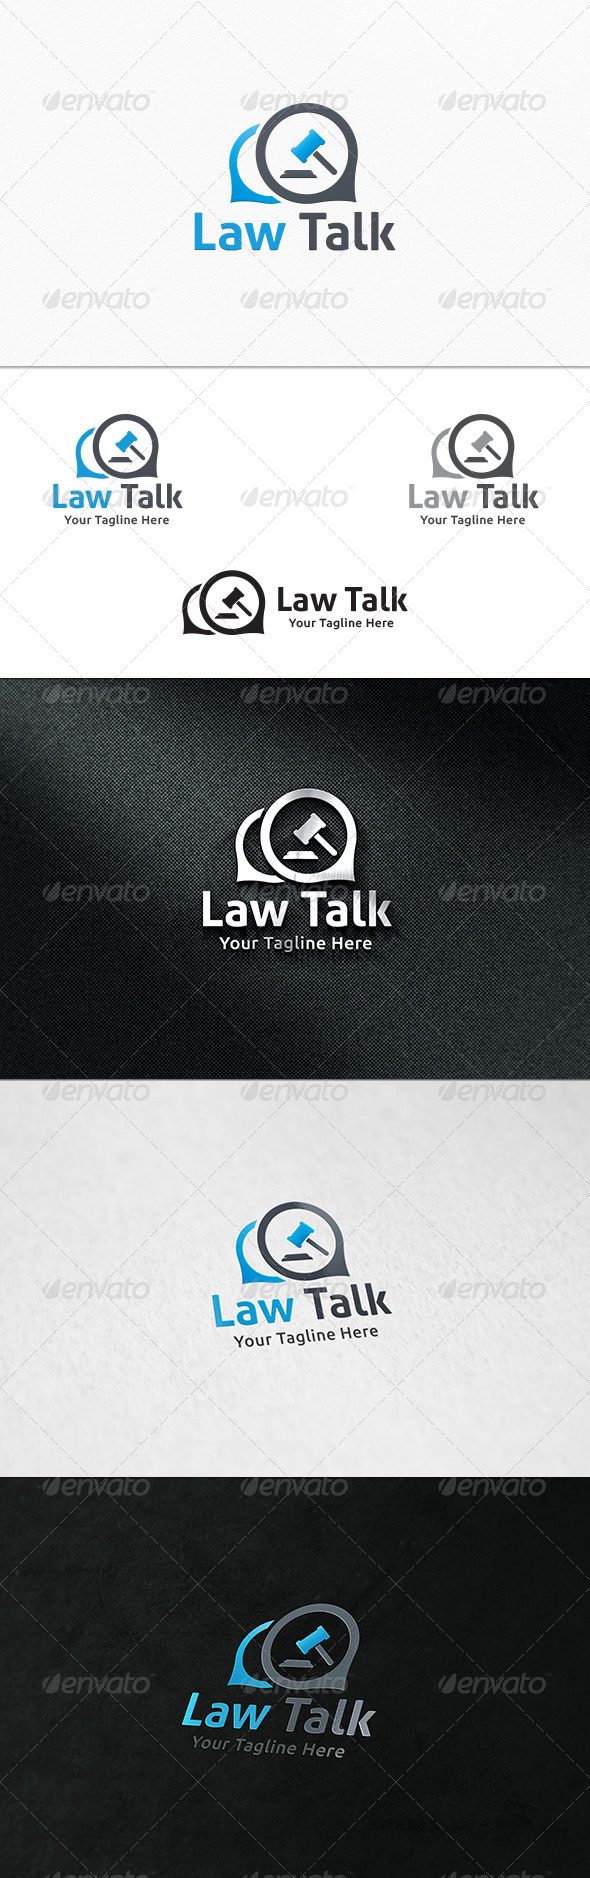 Law Talk Logo Template